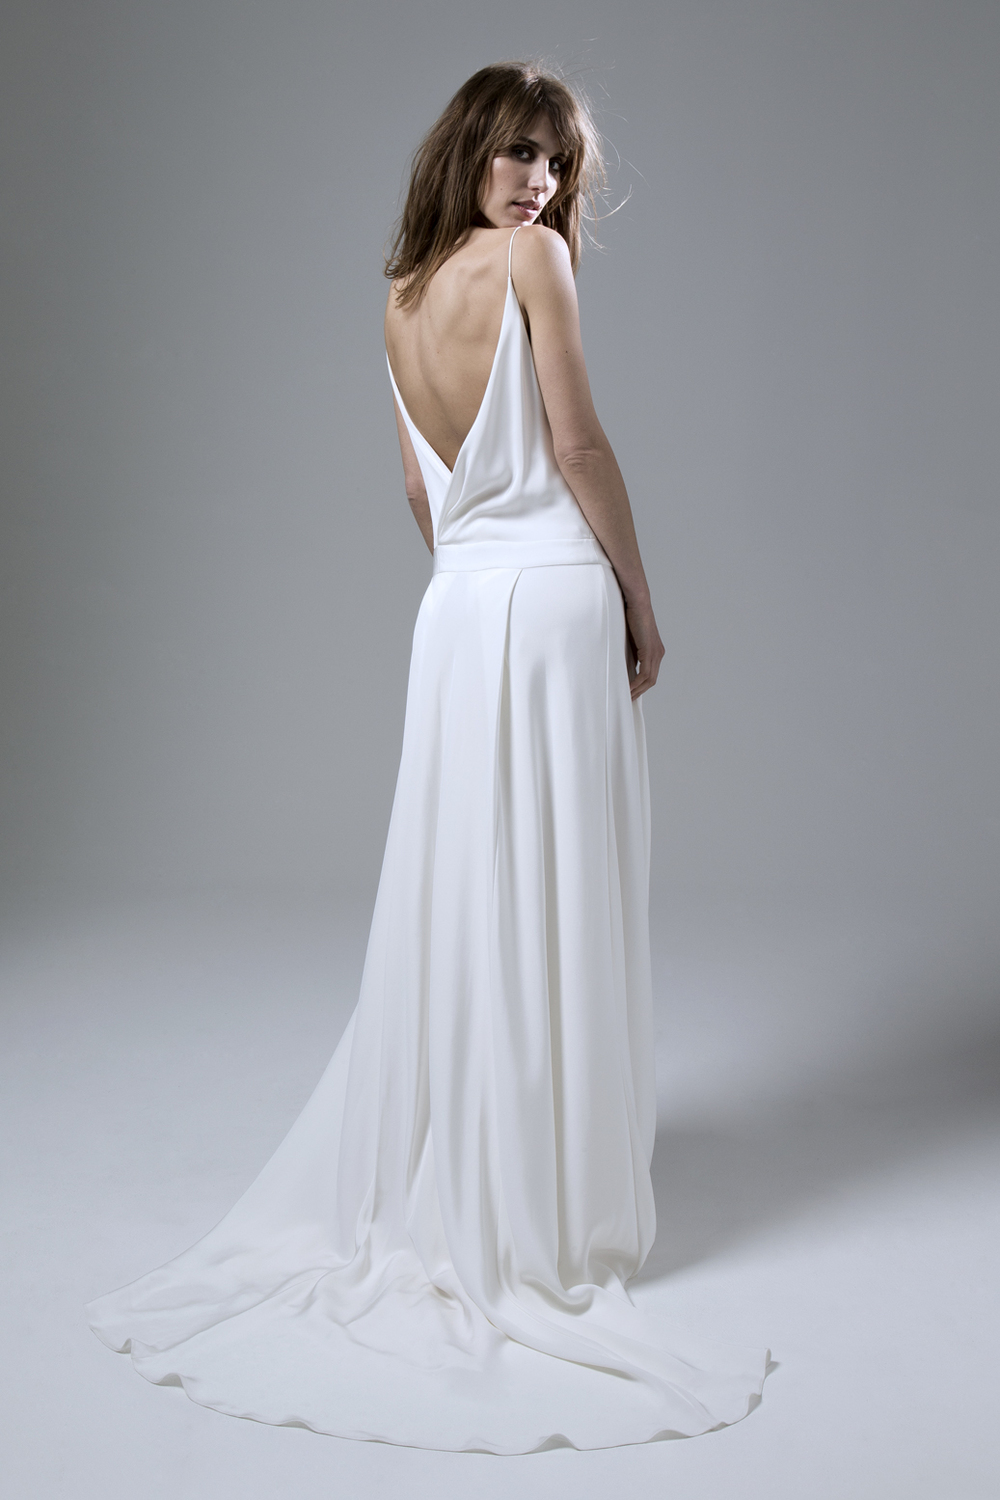 The Halfpenny London wedding dress of the week is our elegant Cherry gown.  This simple, yet stunning dress pairs luxe silk crepe fabric with a delicate French lace insert